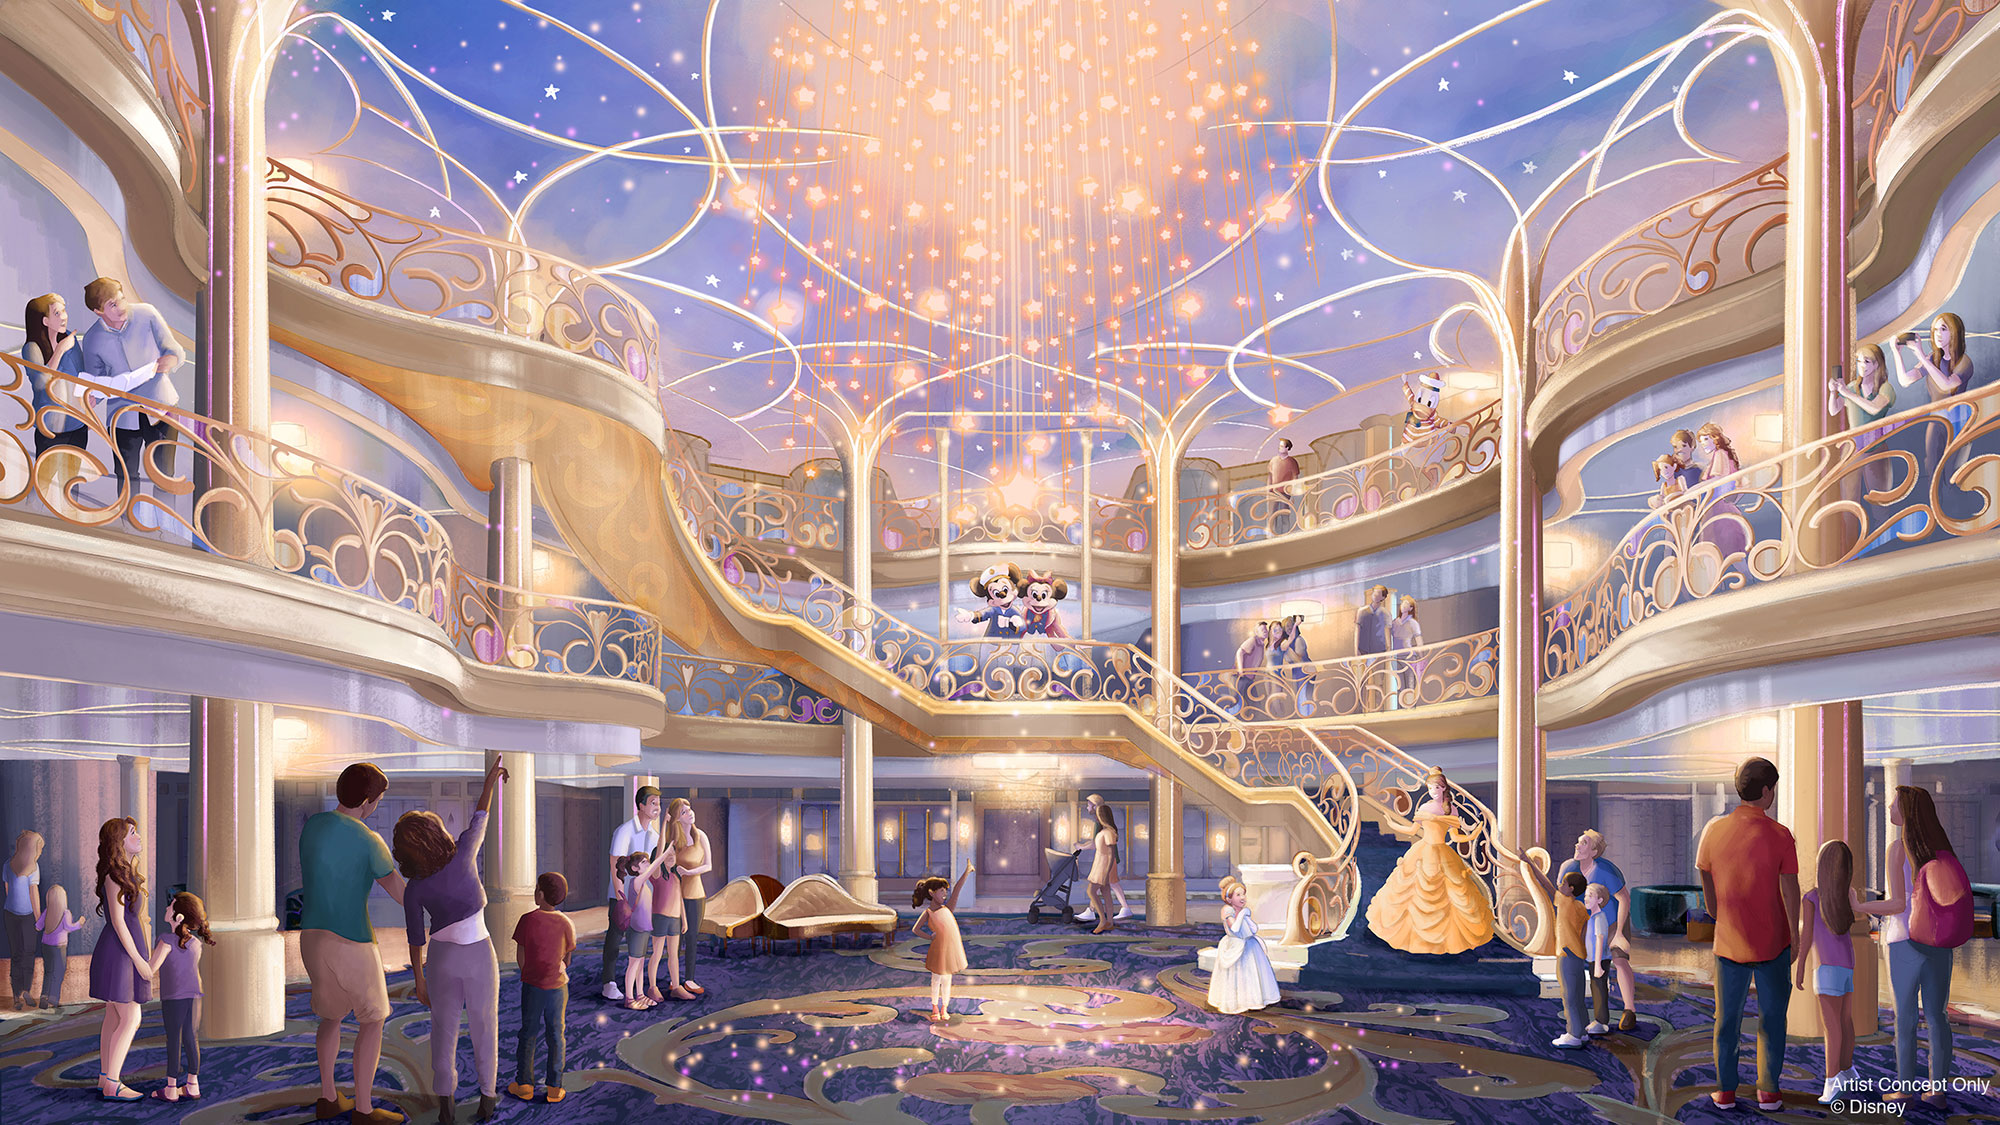 Disney Cruise Lines Reveals Newest Ship (and Island Getaway) — See the Disney Wish!